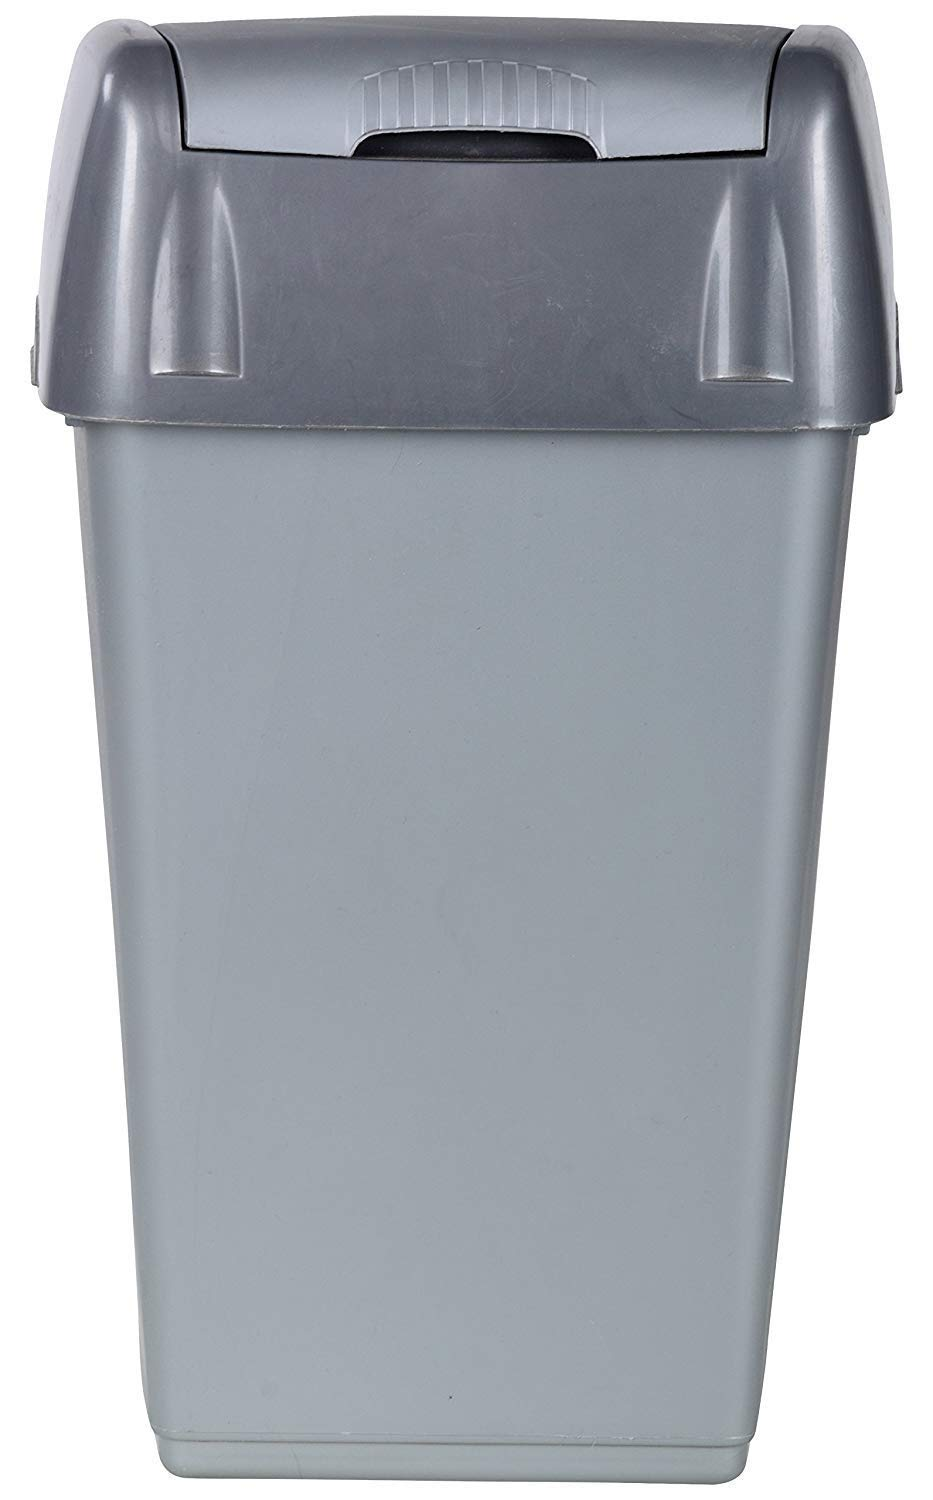 E-Ware Plastic Garbage Waste Dustbin Kitchen Office Home Dustbin ...